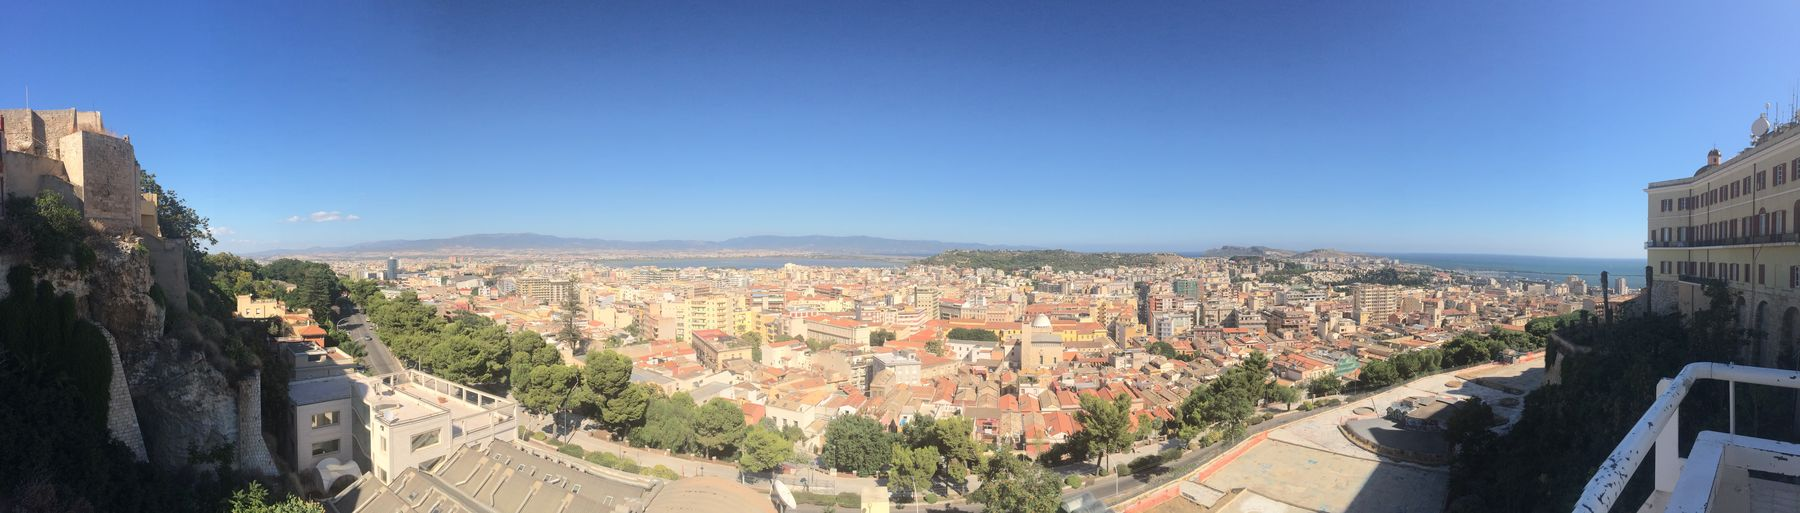 Panorama Cagliari Urban City View Urban Landscape Sardinia Sardegna Italy  Taking Photos